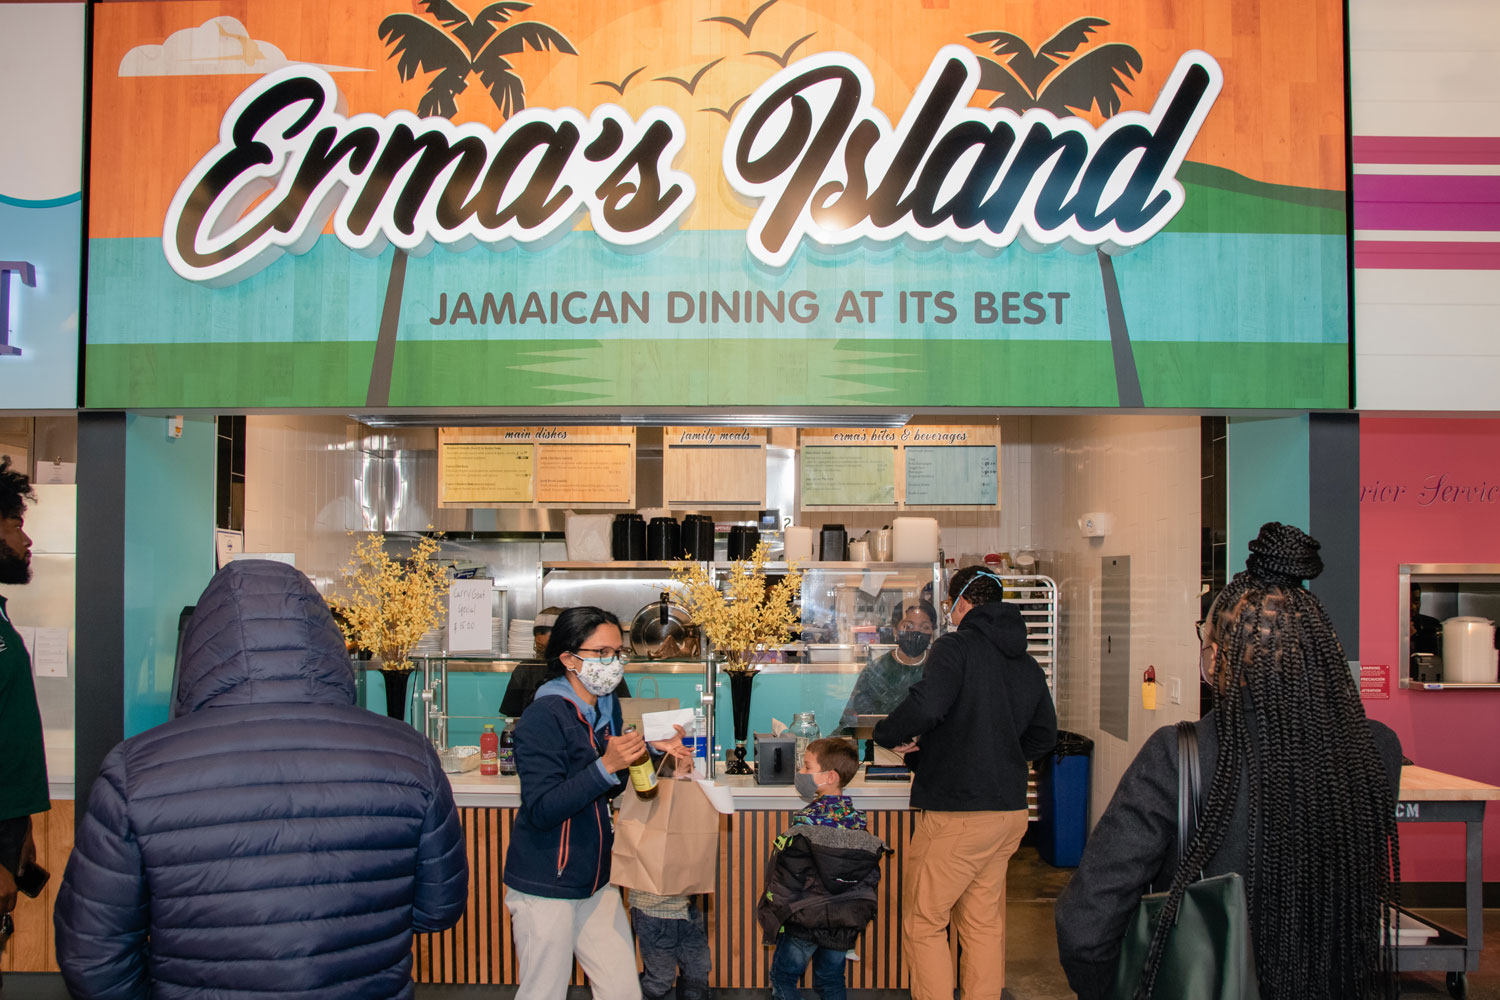 The colorful interior of Erma's Island, Jamaican Dining At Its Best.